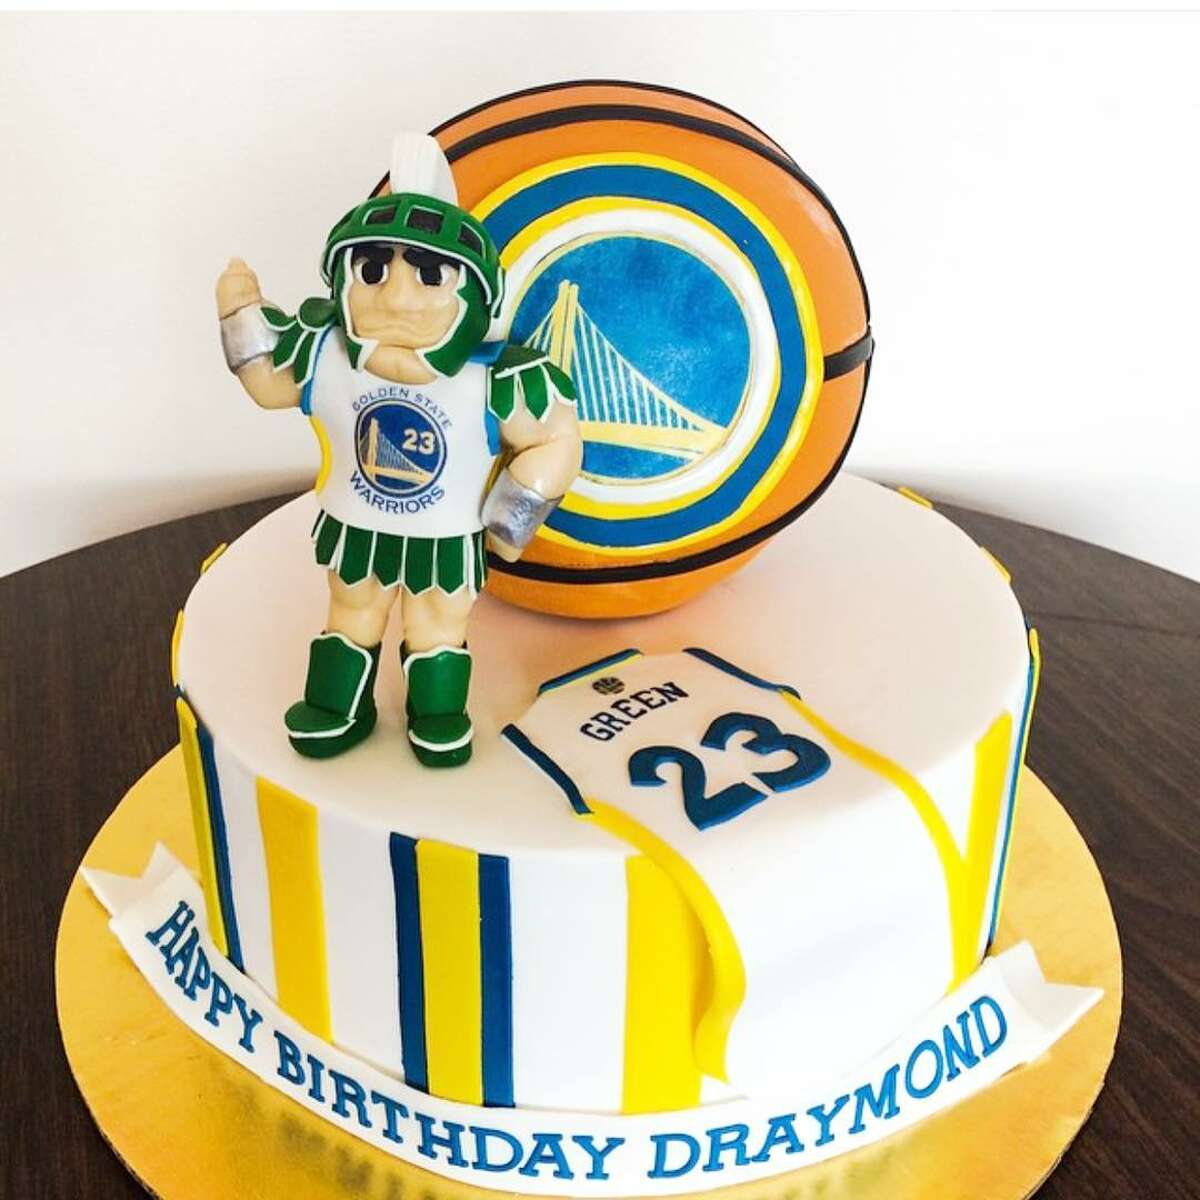 A cake made for Draymond Green's birthday, honoring both the Warriors and his college team, the Spartans.